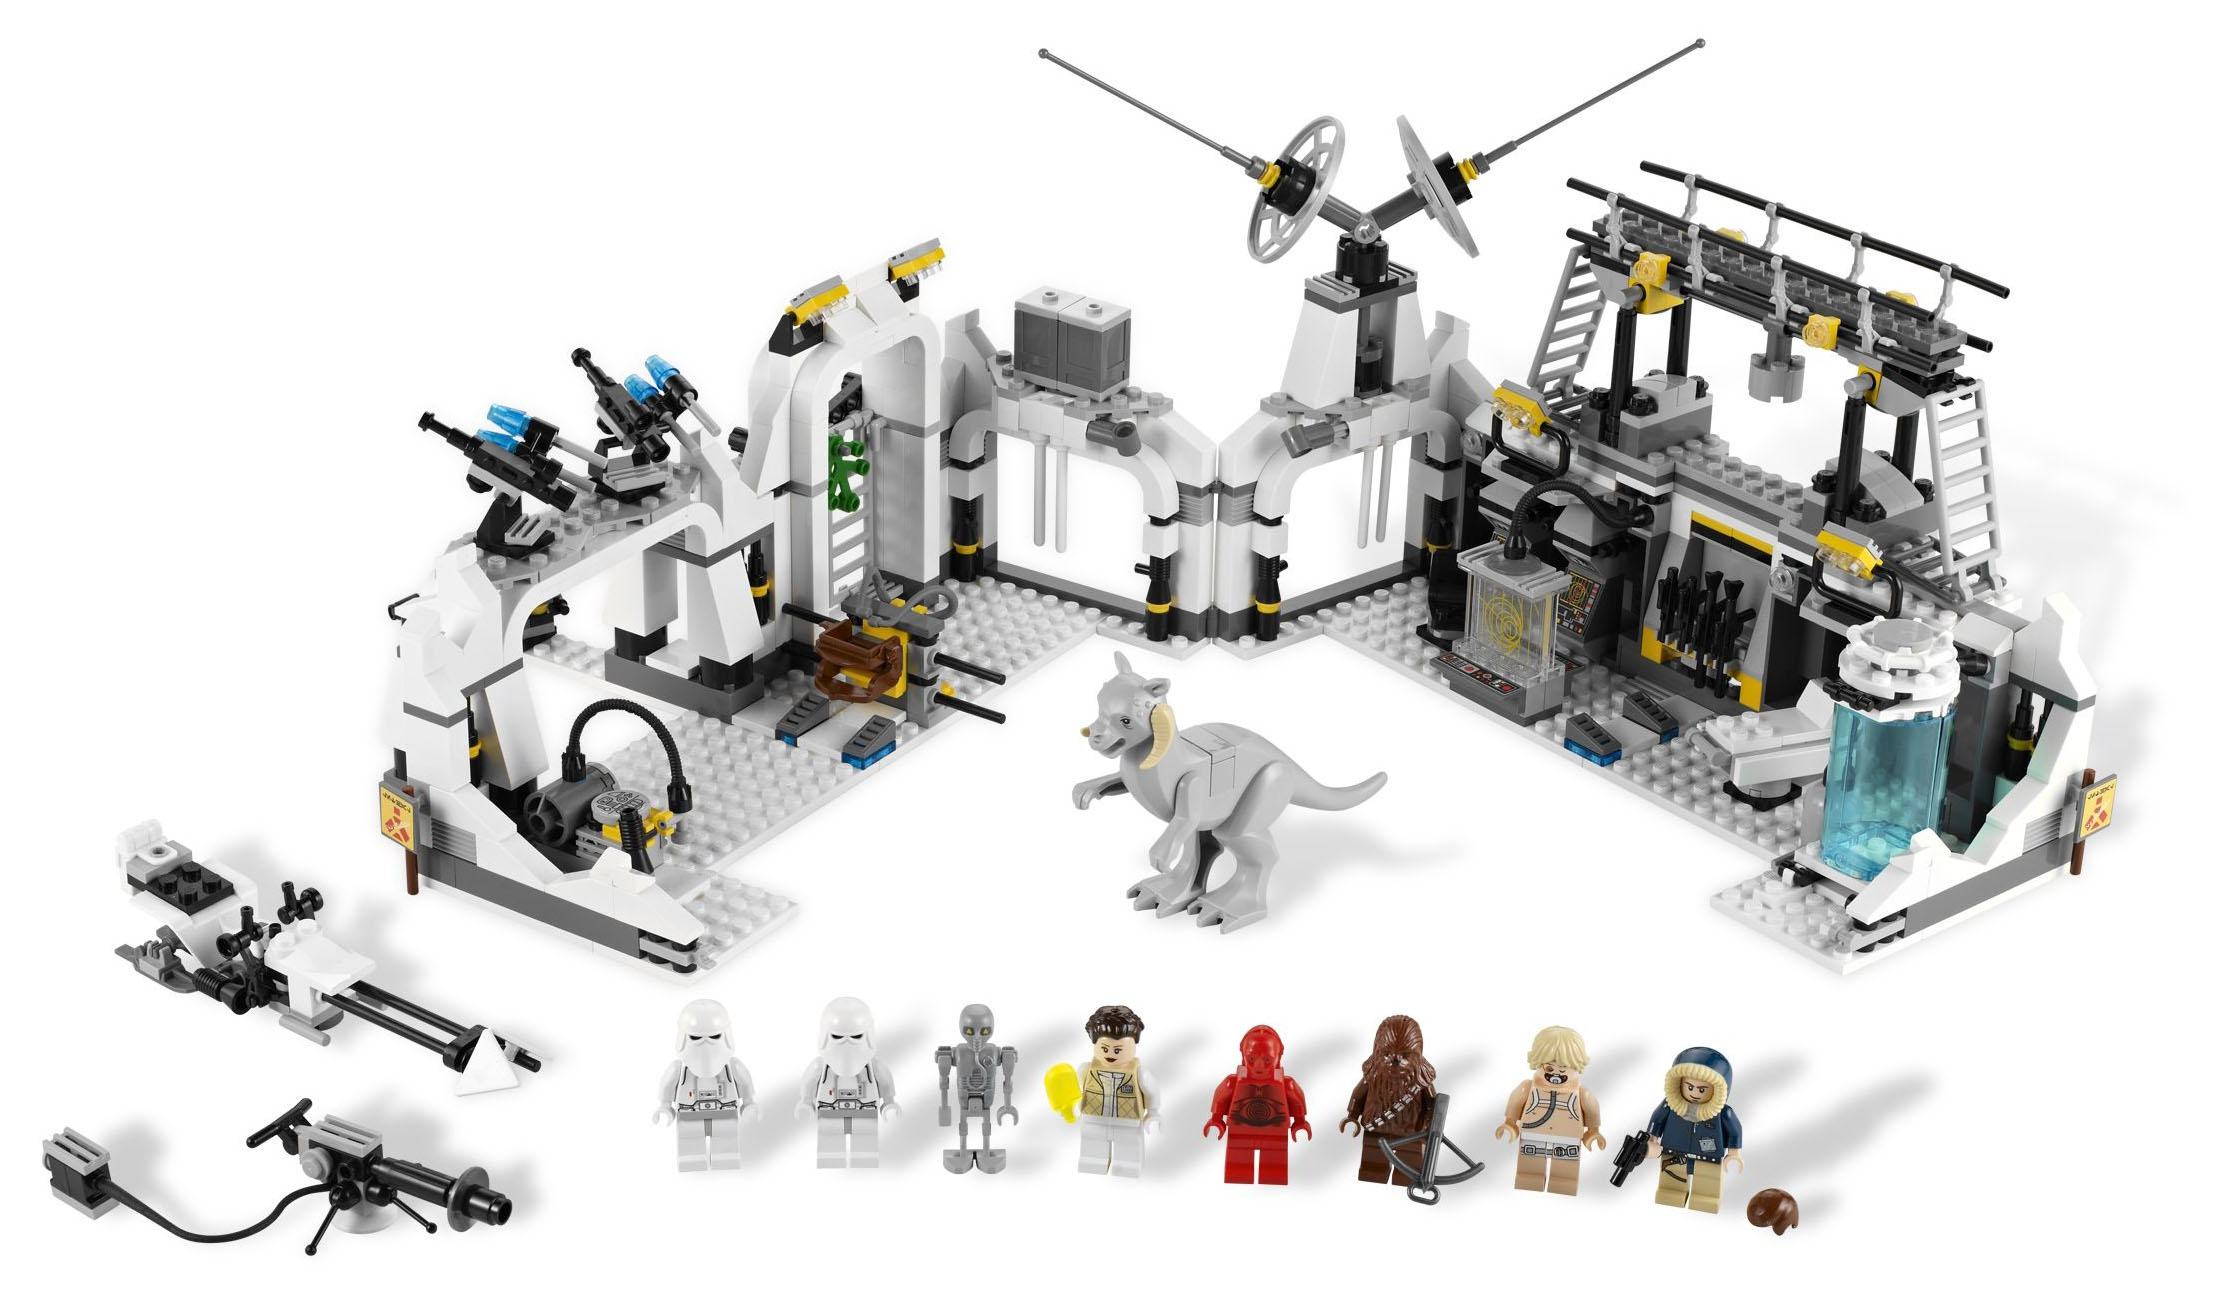 lego star wars 7879 pas cher hoth echo base. Black Bedroom Furniture Sets. Home Design Ideas